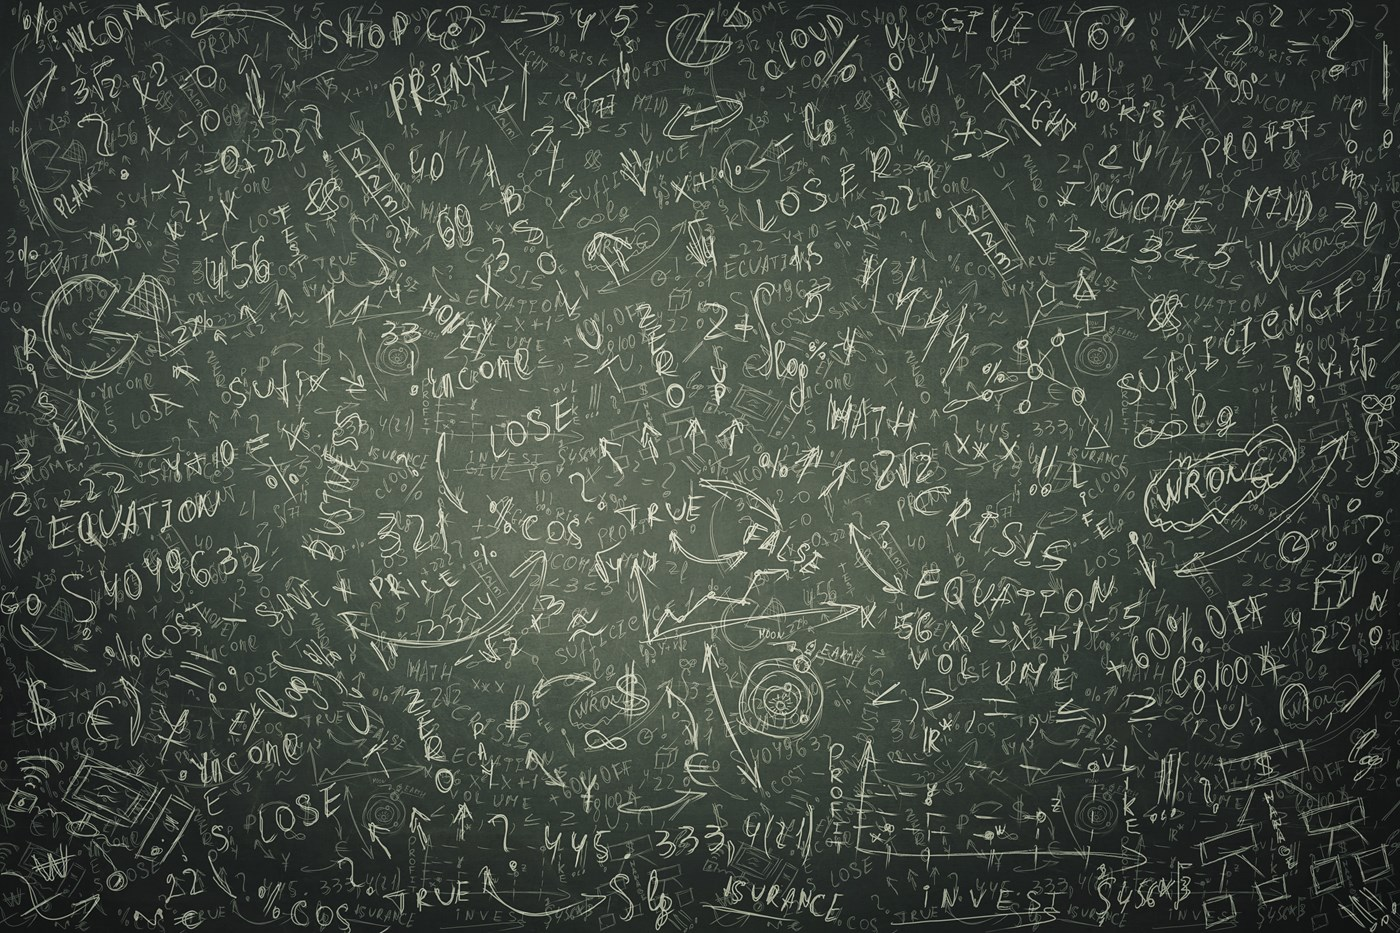 A green board covered in economics equations, graphs and charts.